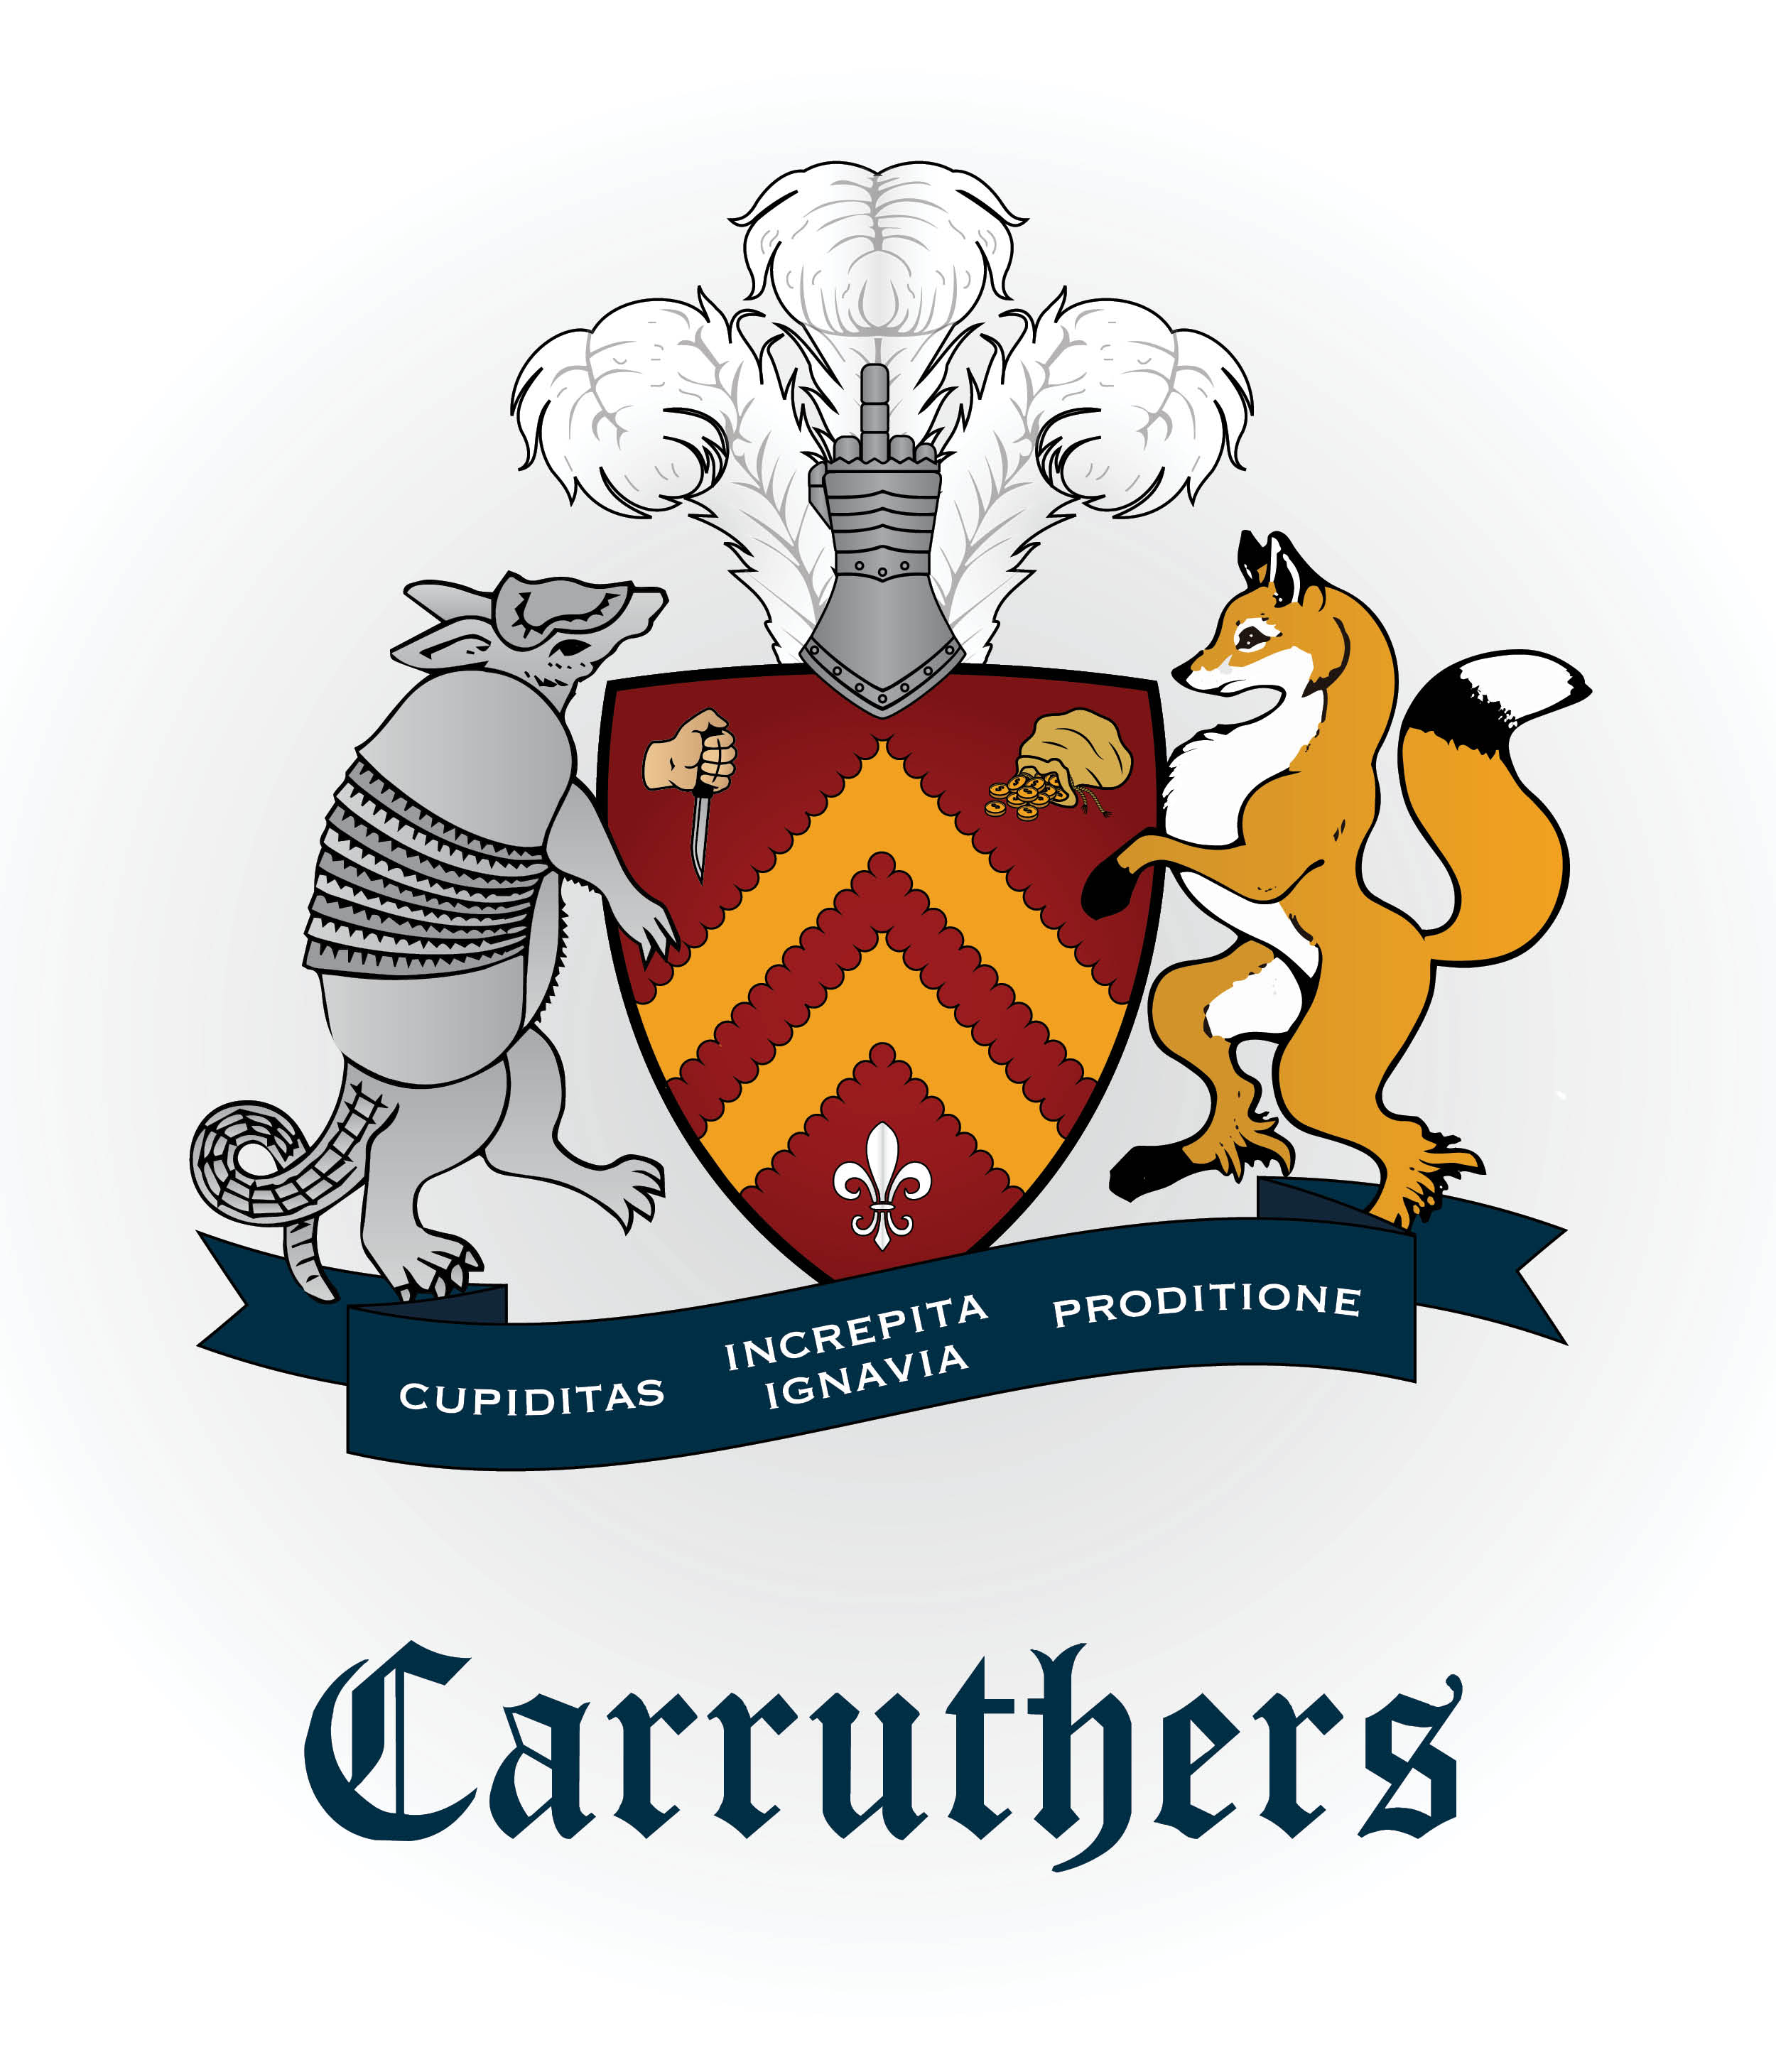 Clan Carruthers Crest Reimagination - Gag Gift